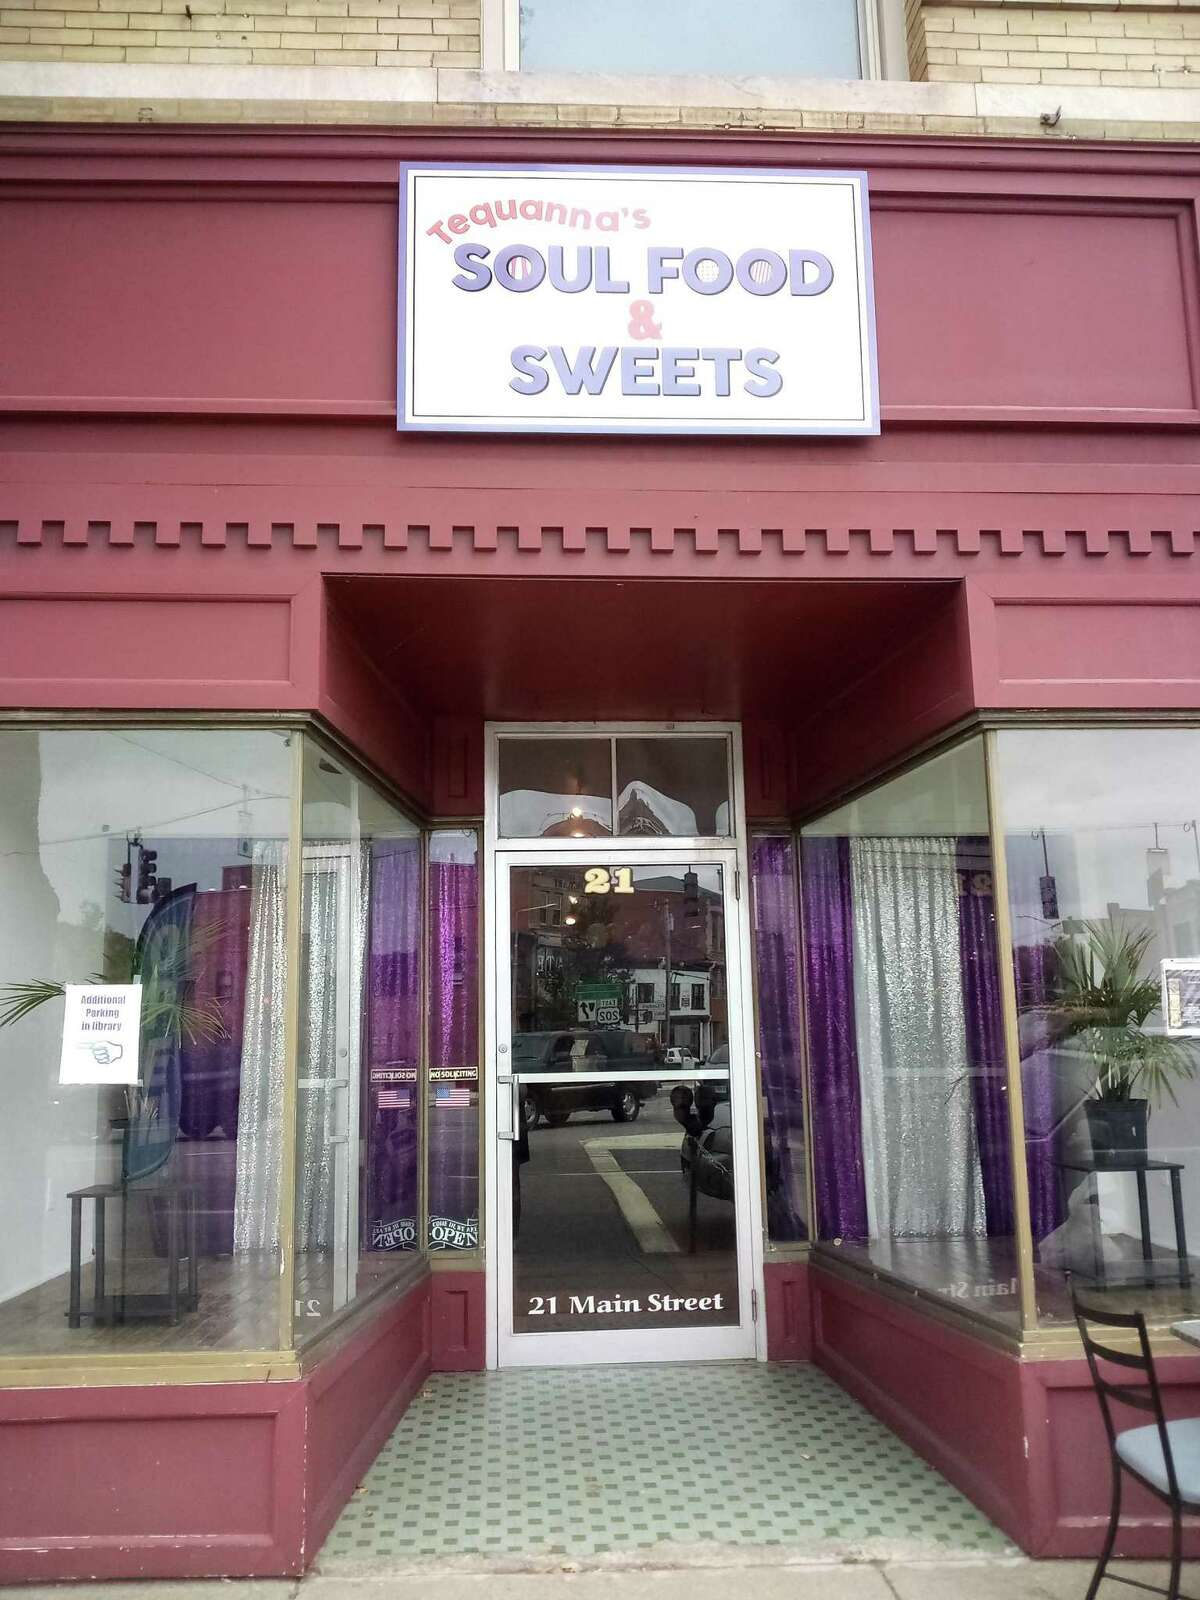 Tequanna's Soul Food & Sweets opened Aug. 7 at 21 Main St., Torrington.